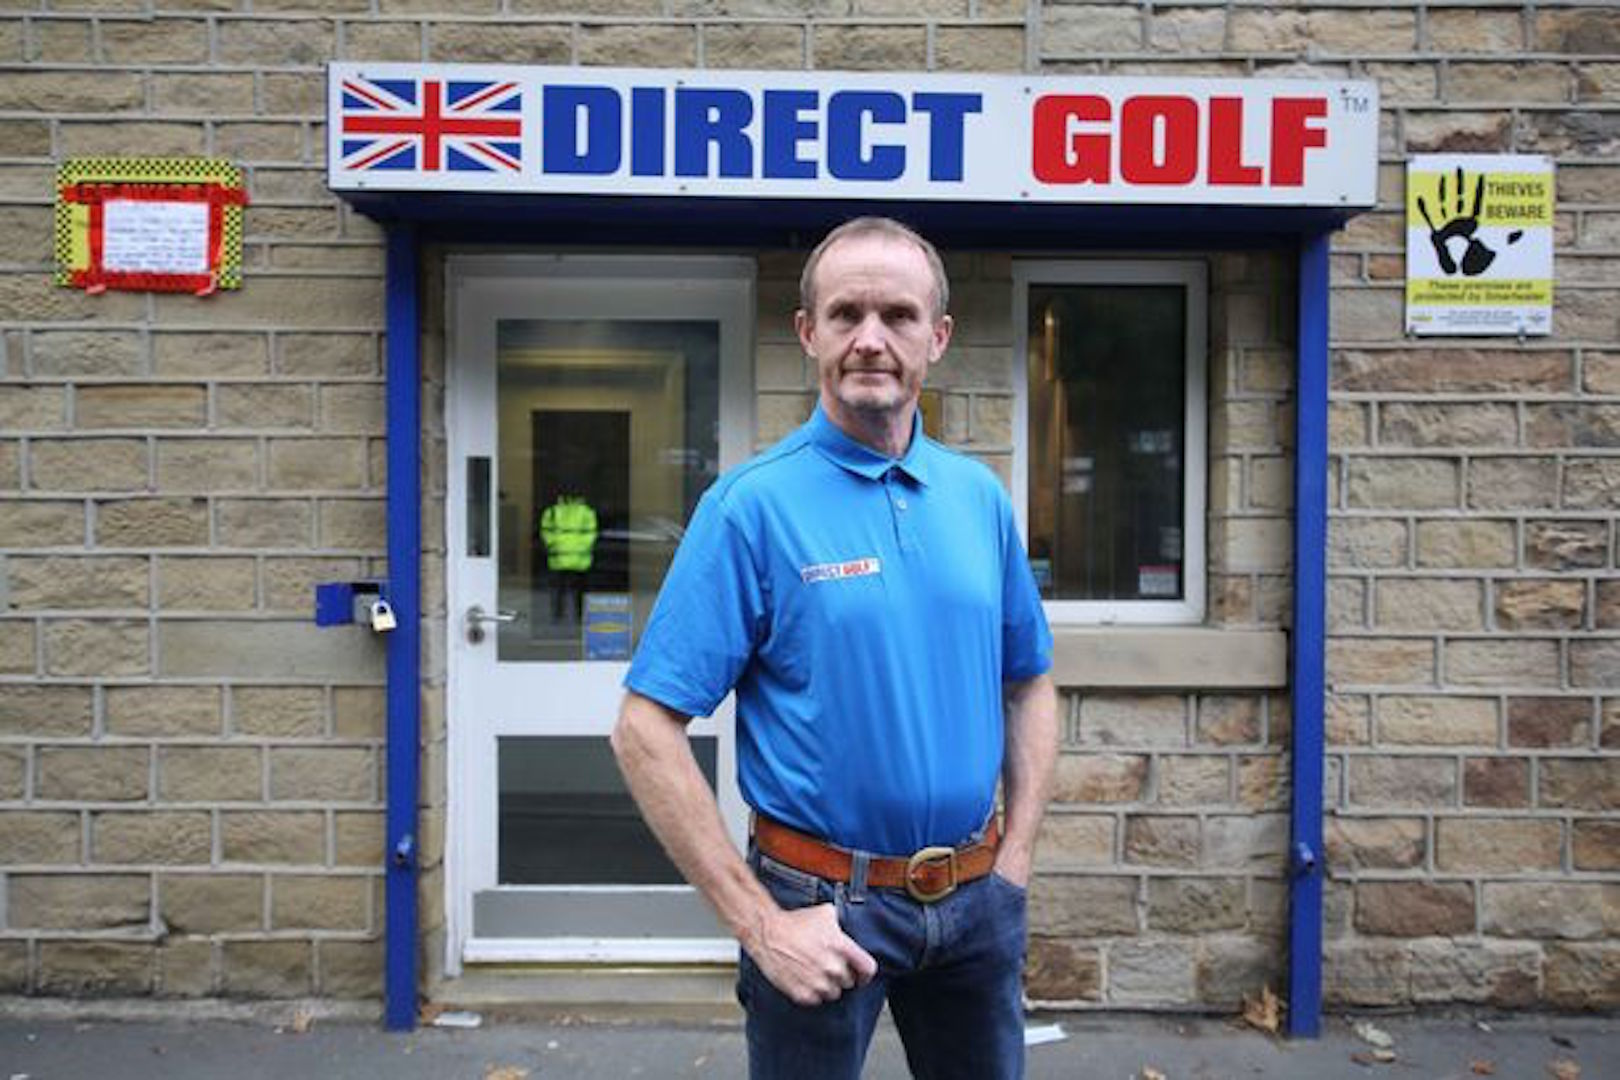 Direct Golf Owner Fights Back